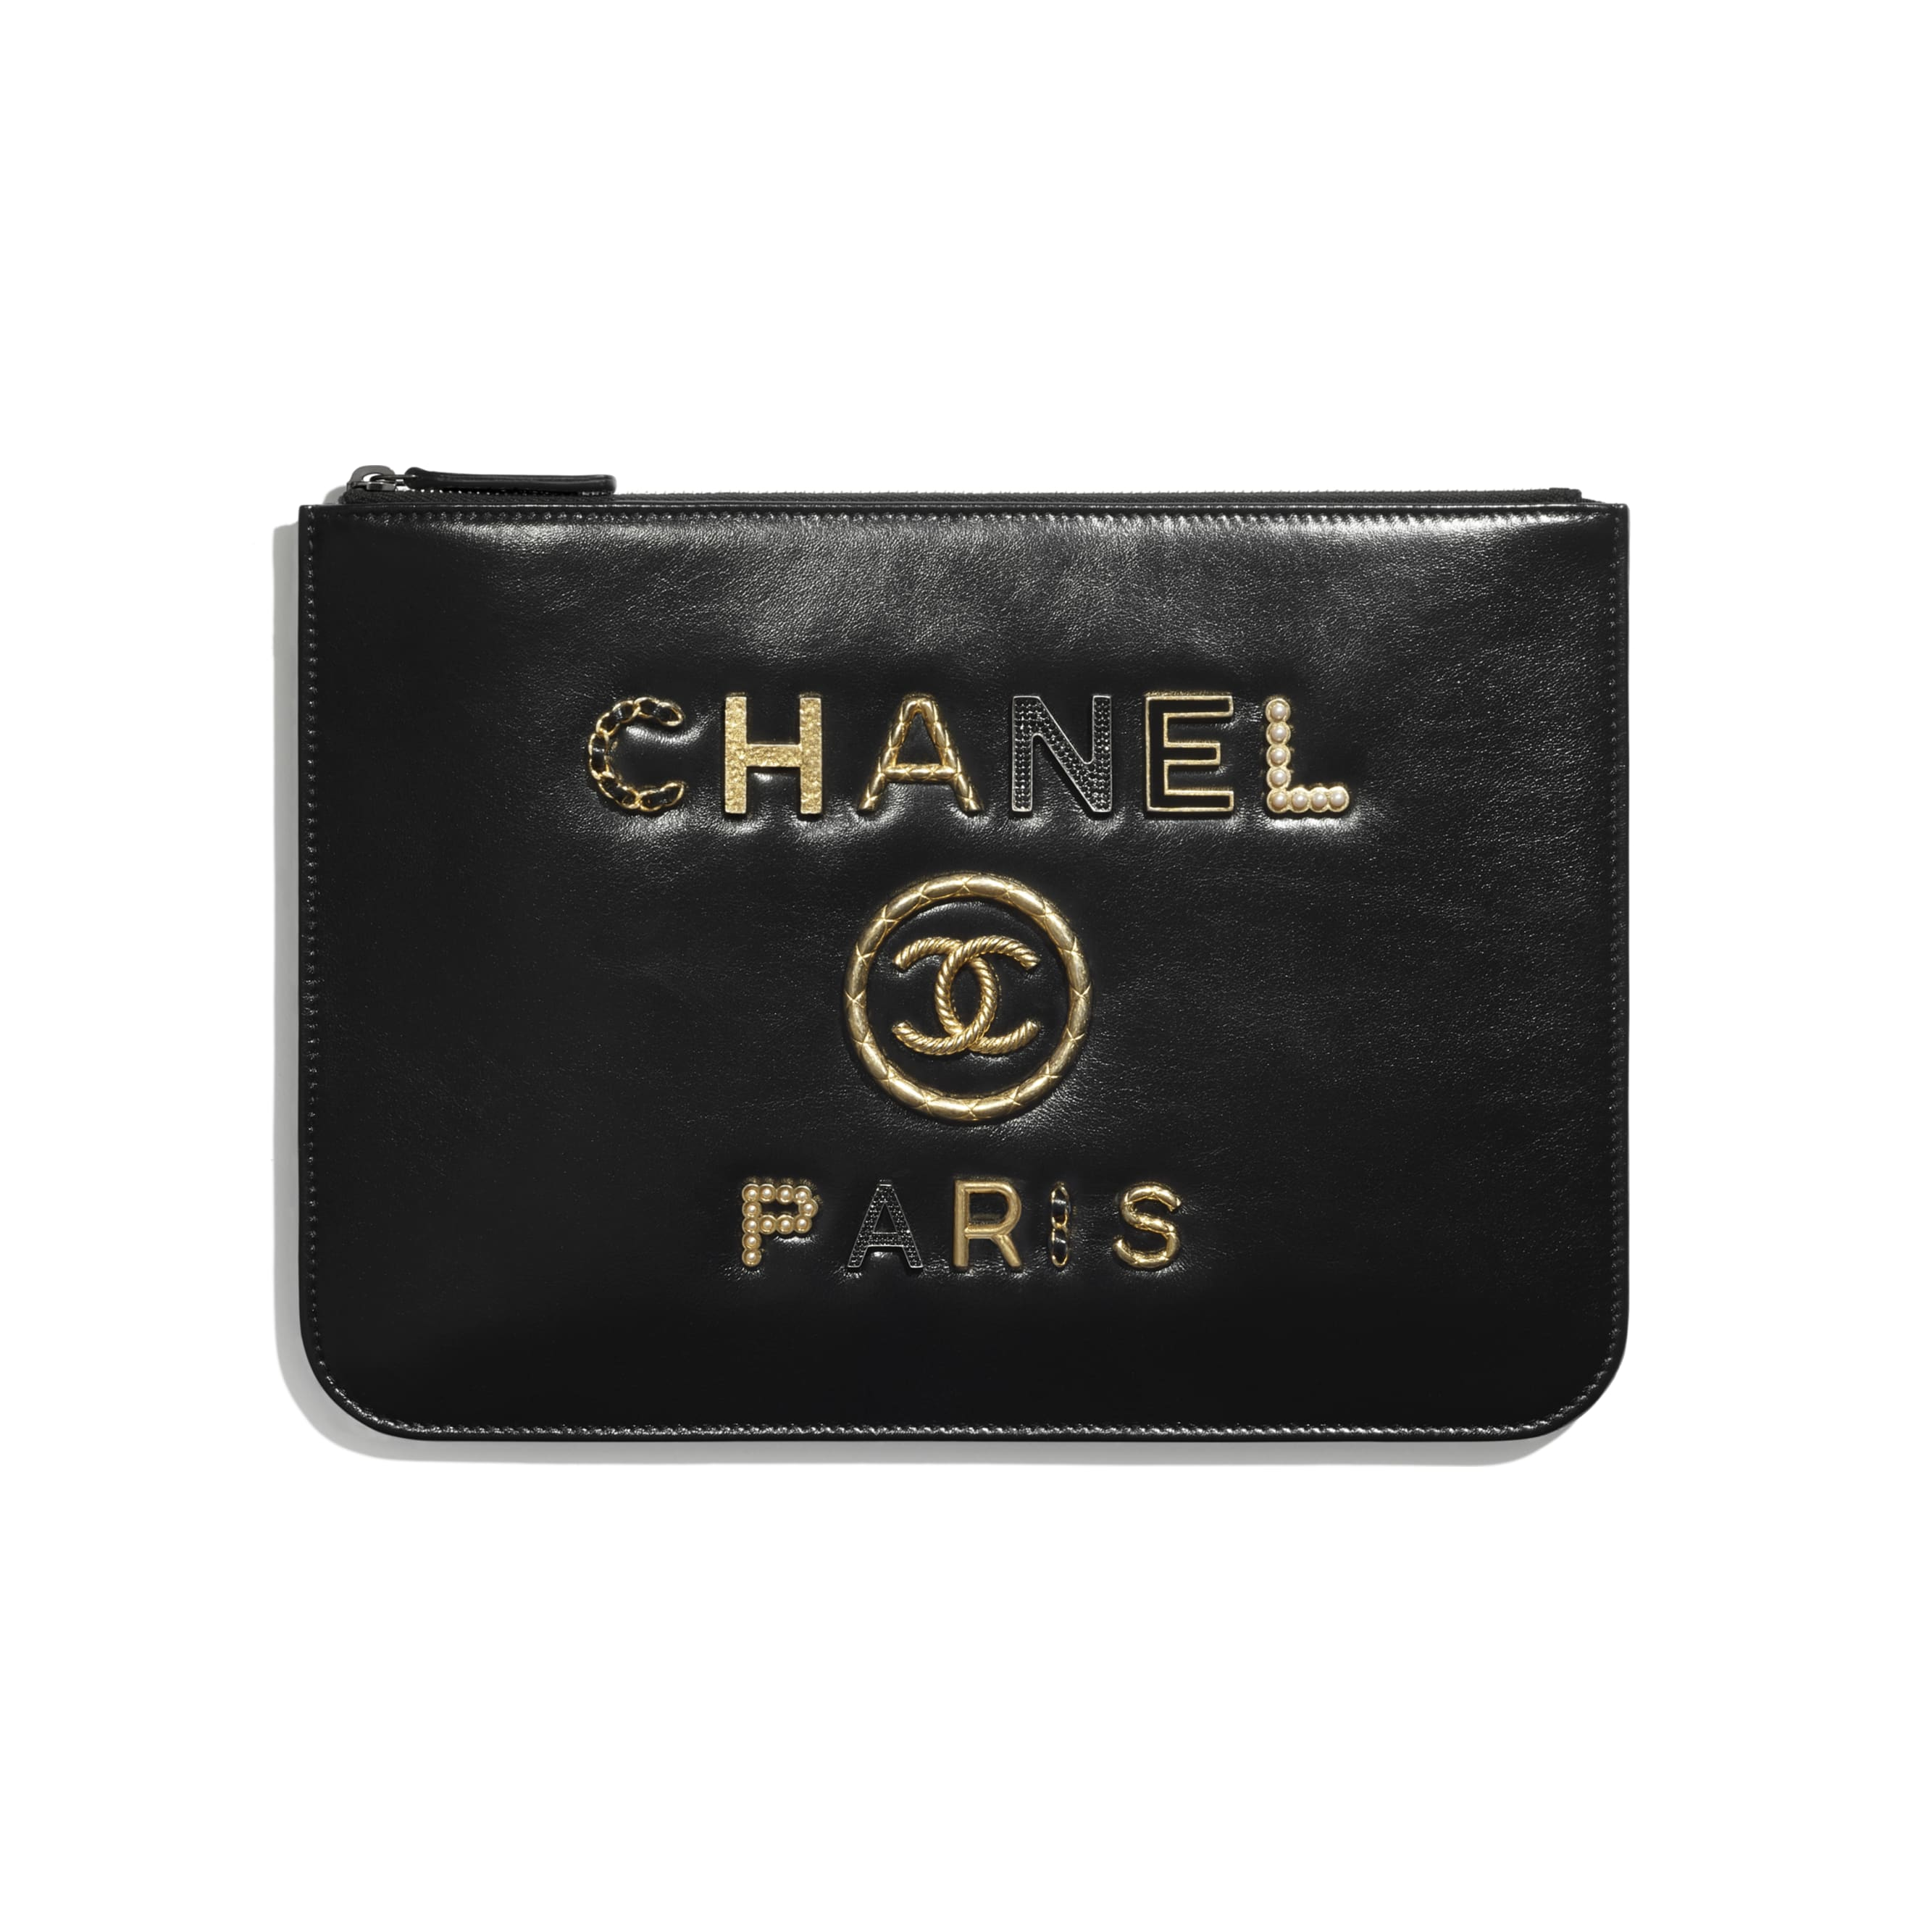 Pouch - Black - Shiny Calfskin, Crystal Pearls, Diamante, Enamel, Gold-Tone & Ruthenium-Finish Metal - CHANEL - Default view - see standard sized version